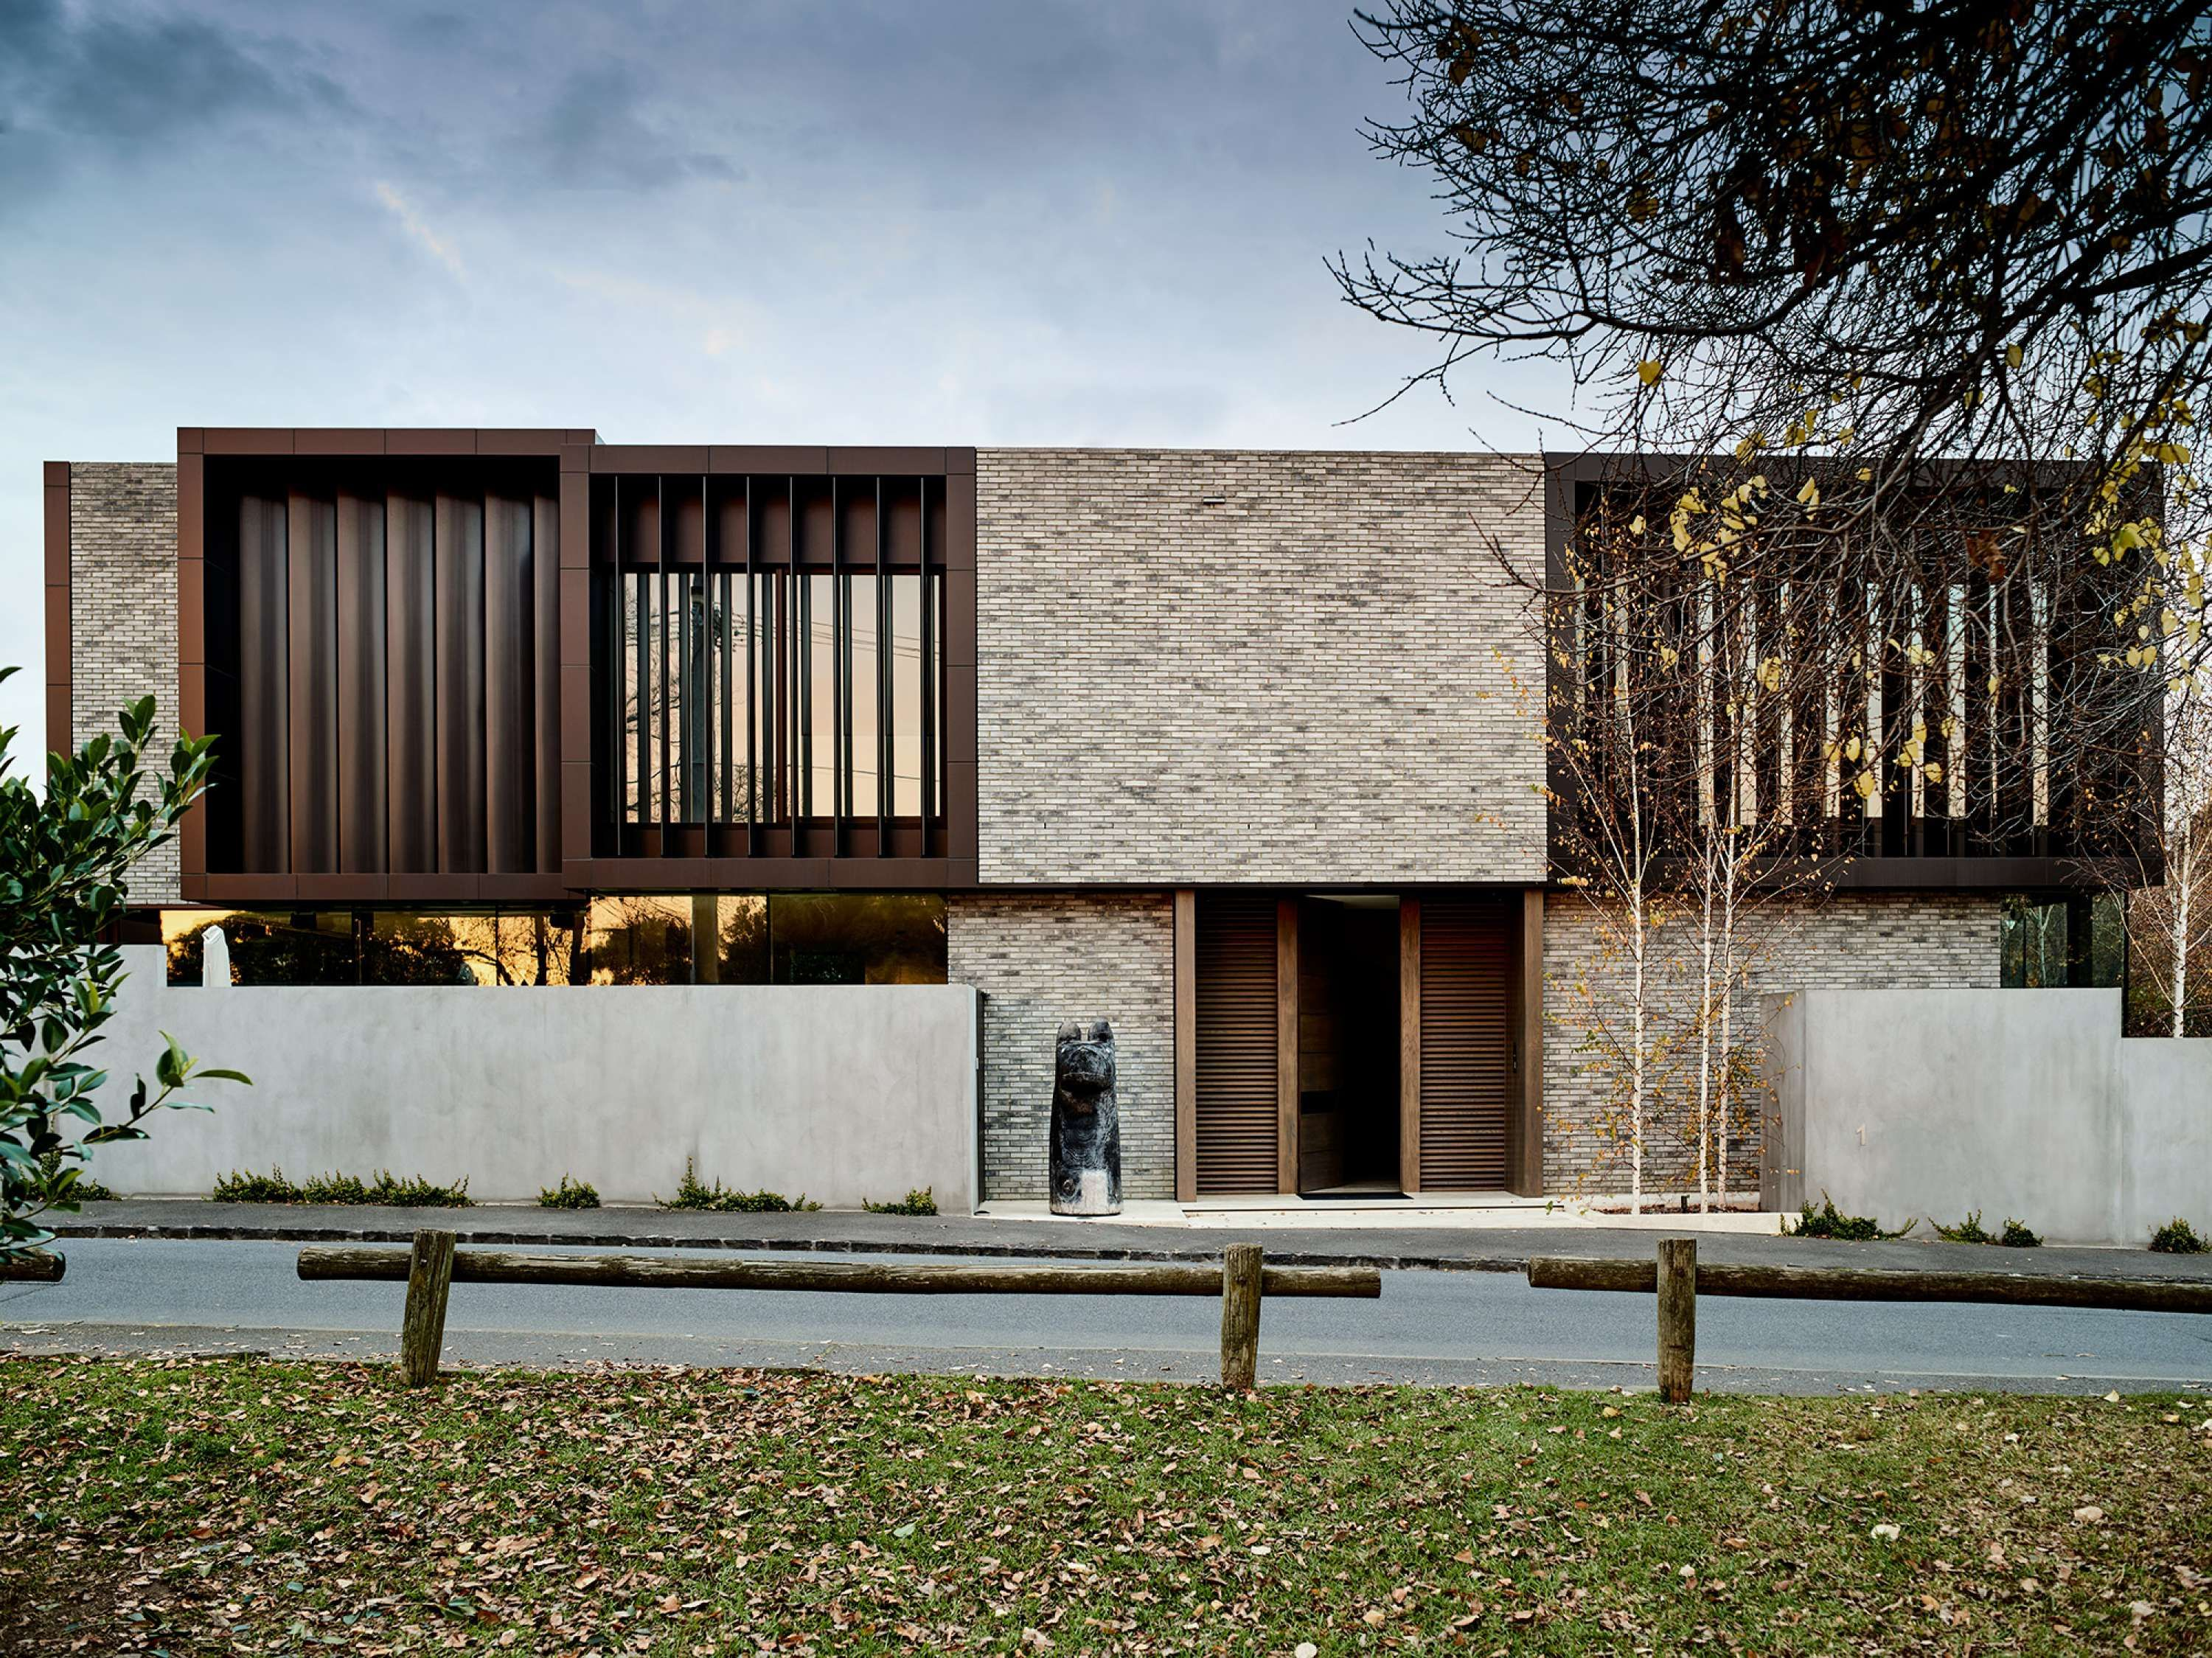 Robert mills is an award winning architect in australia for Residential architect design awards